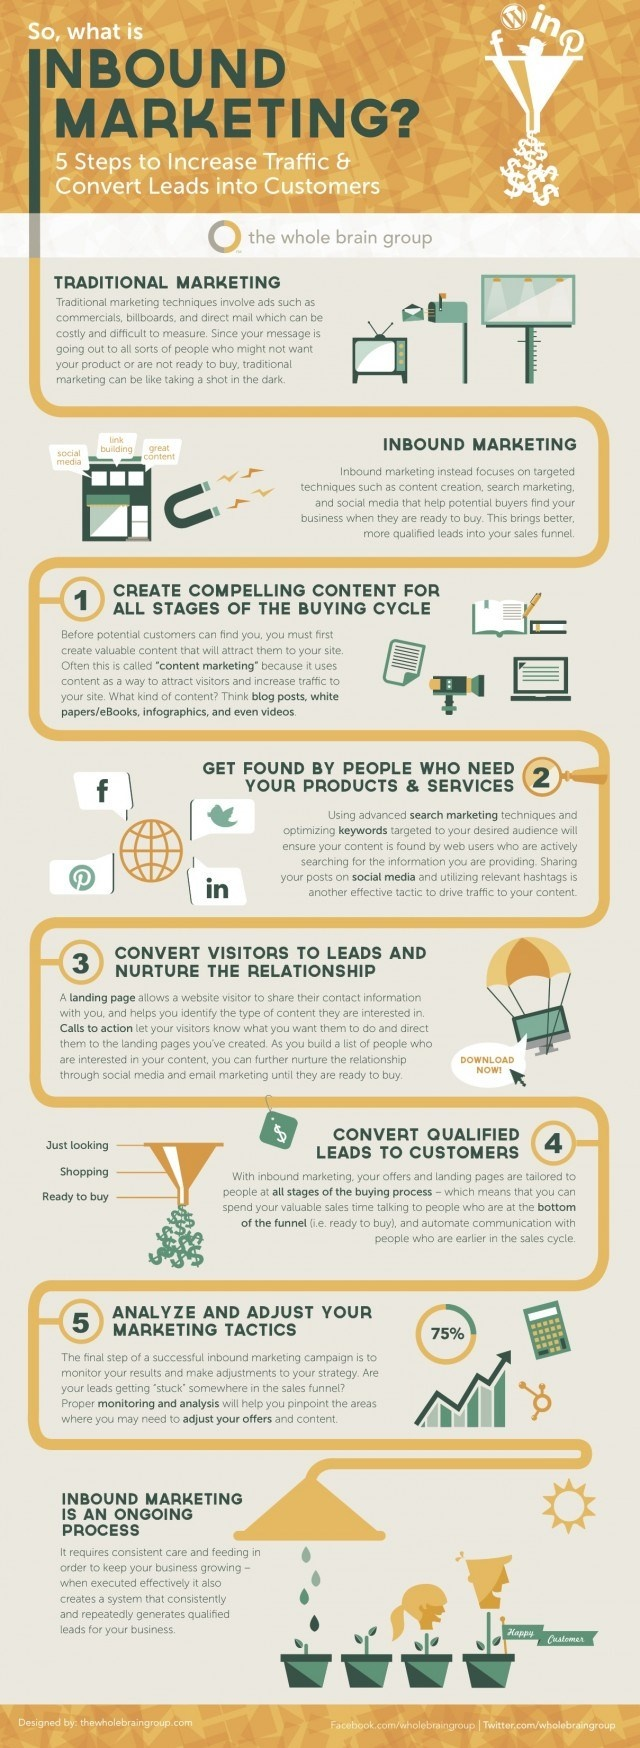 [Infographic] Inbound marketing